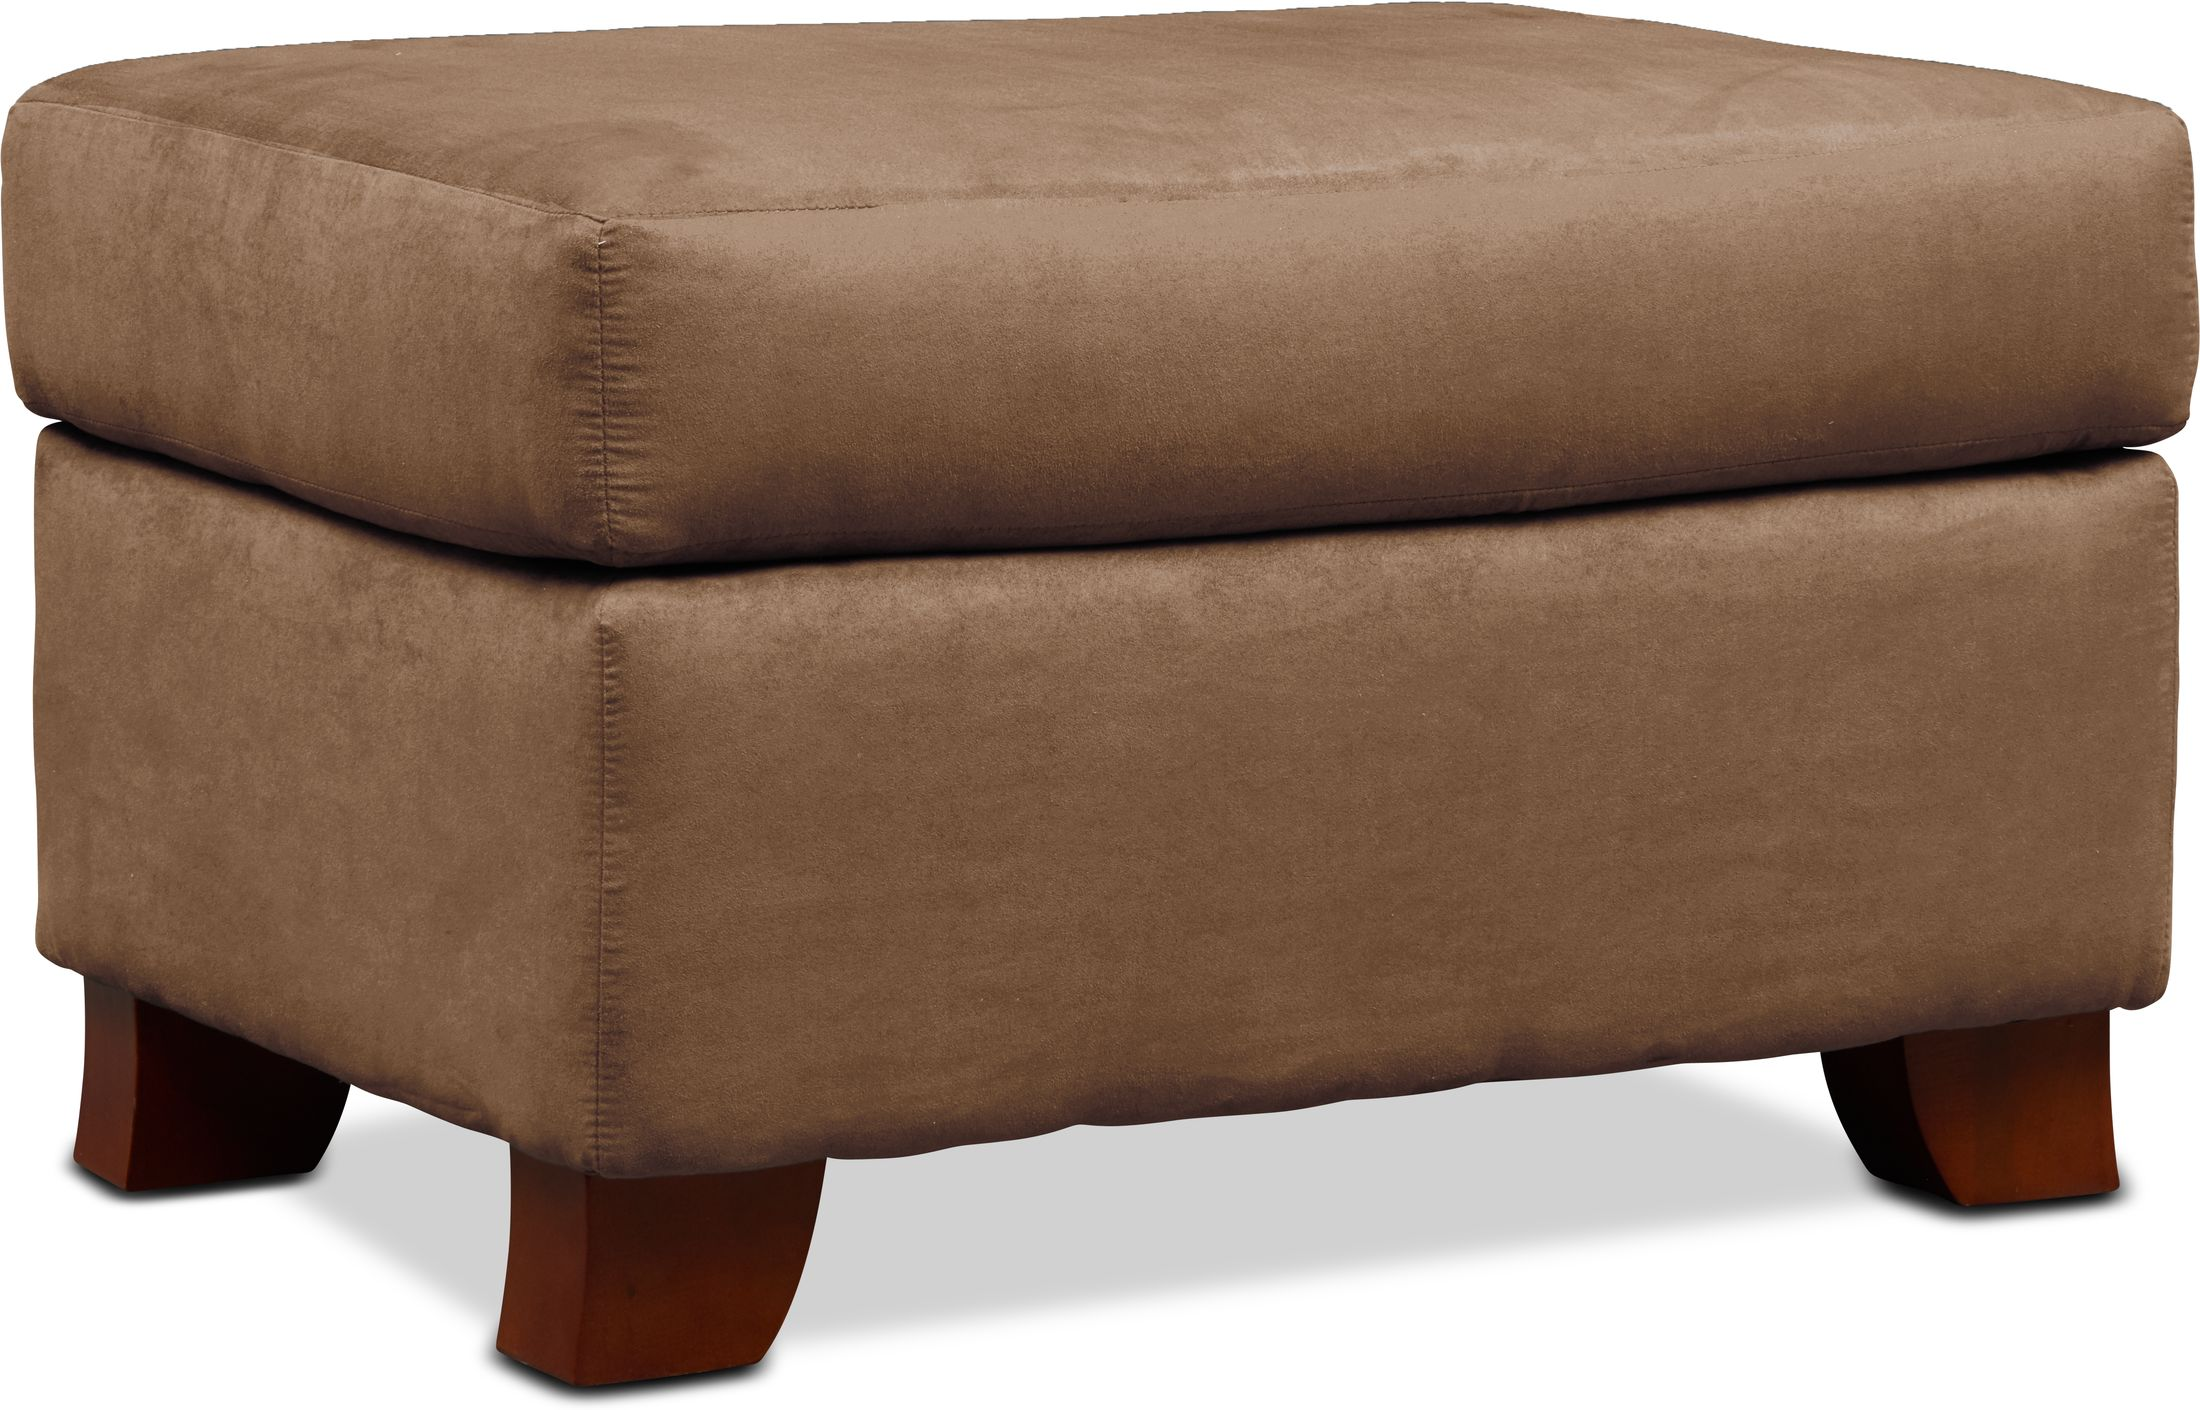 Living Room Furniture - Adrian Ottoman